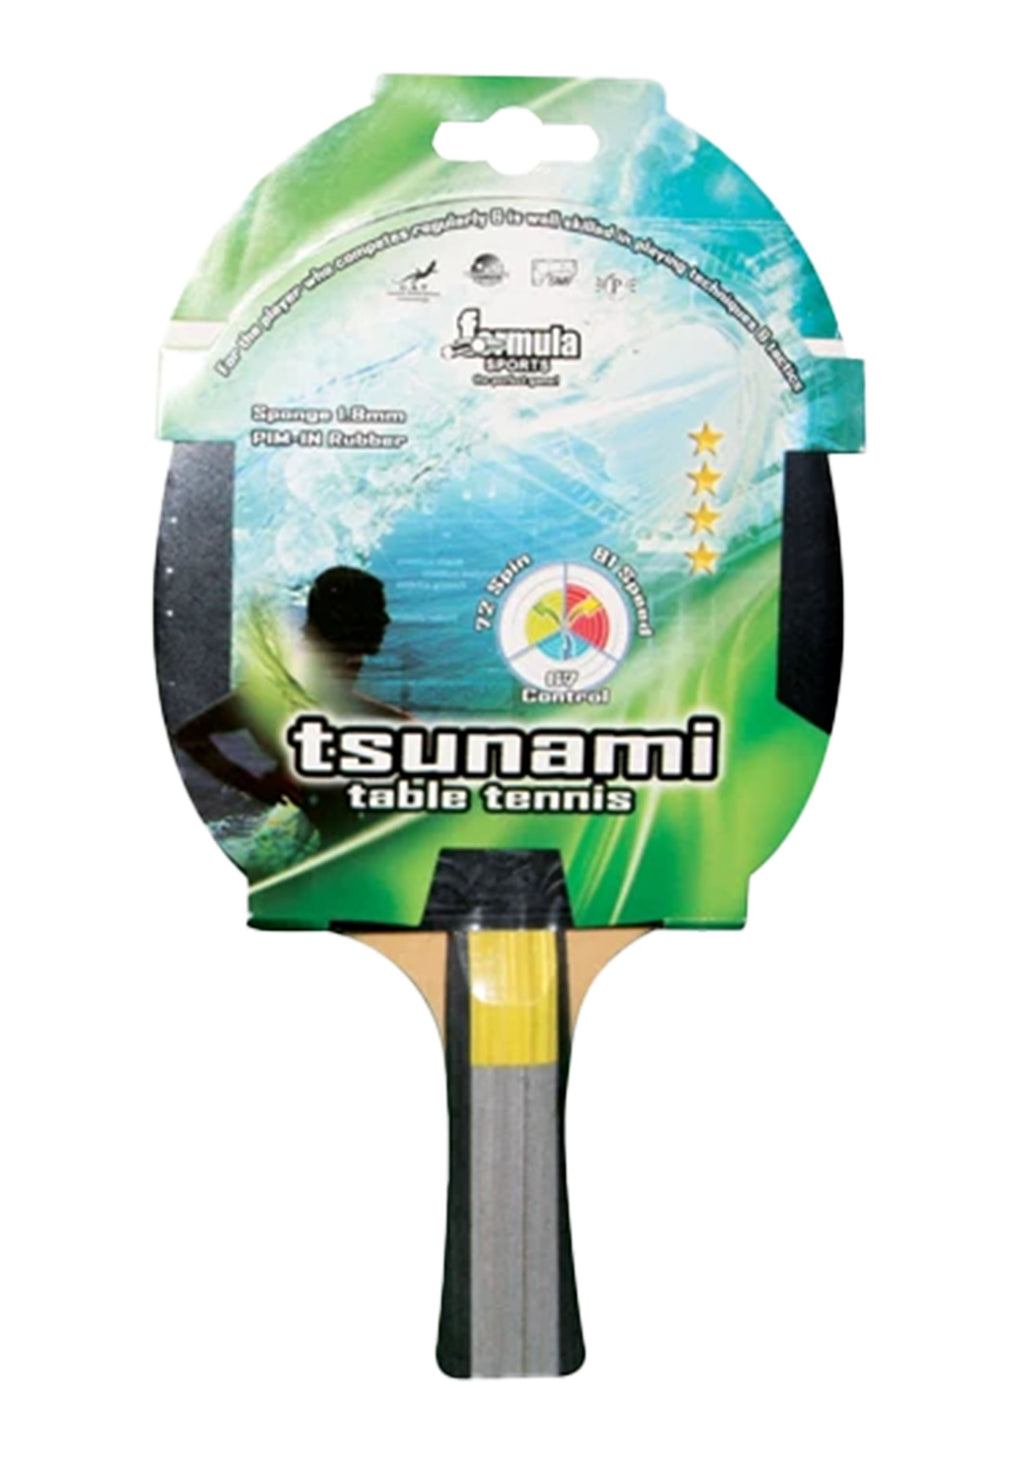 FORMULA SPORTS TSUNAMI 4 STAR TABLE TENNIS BAT <br> T40400